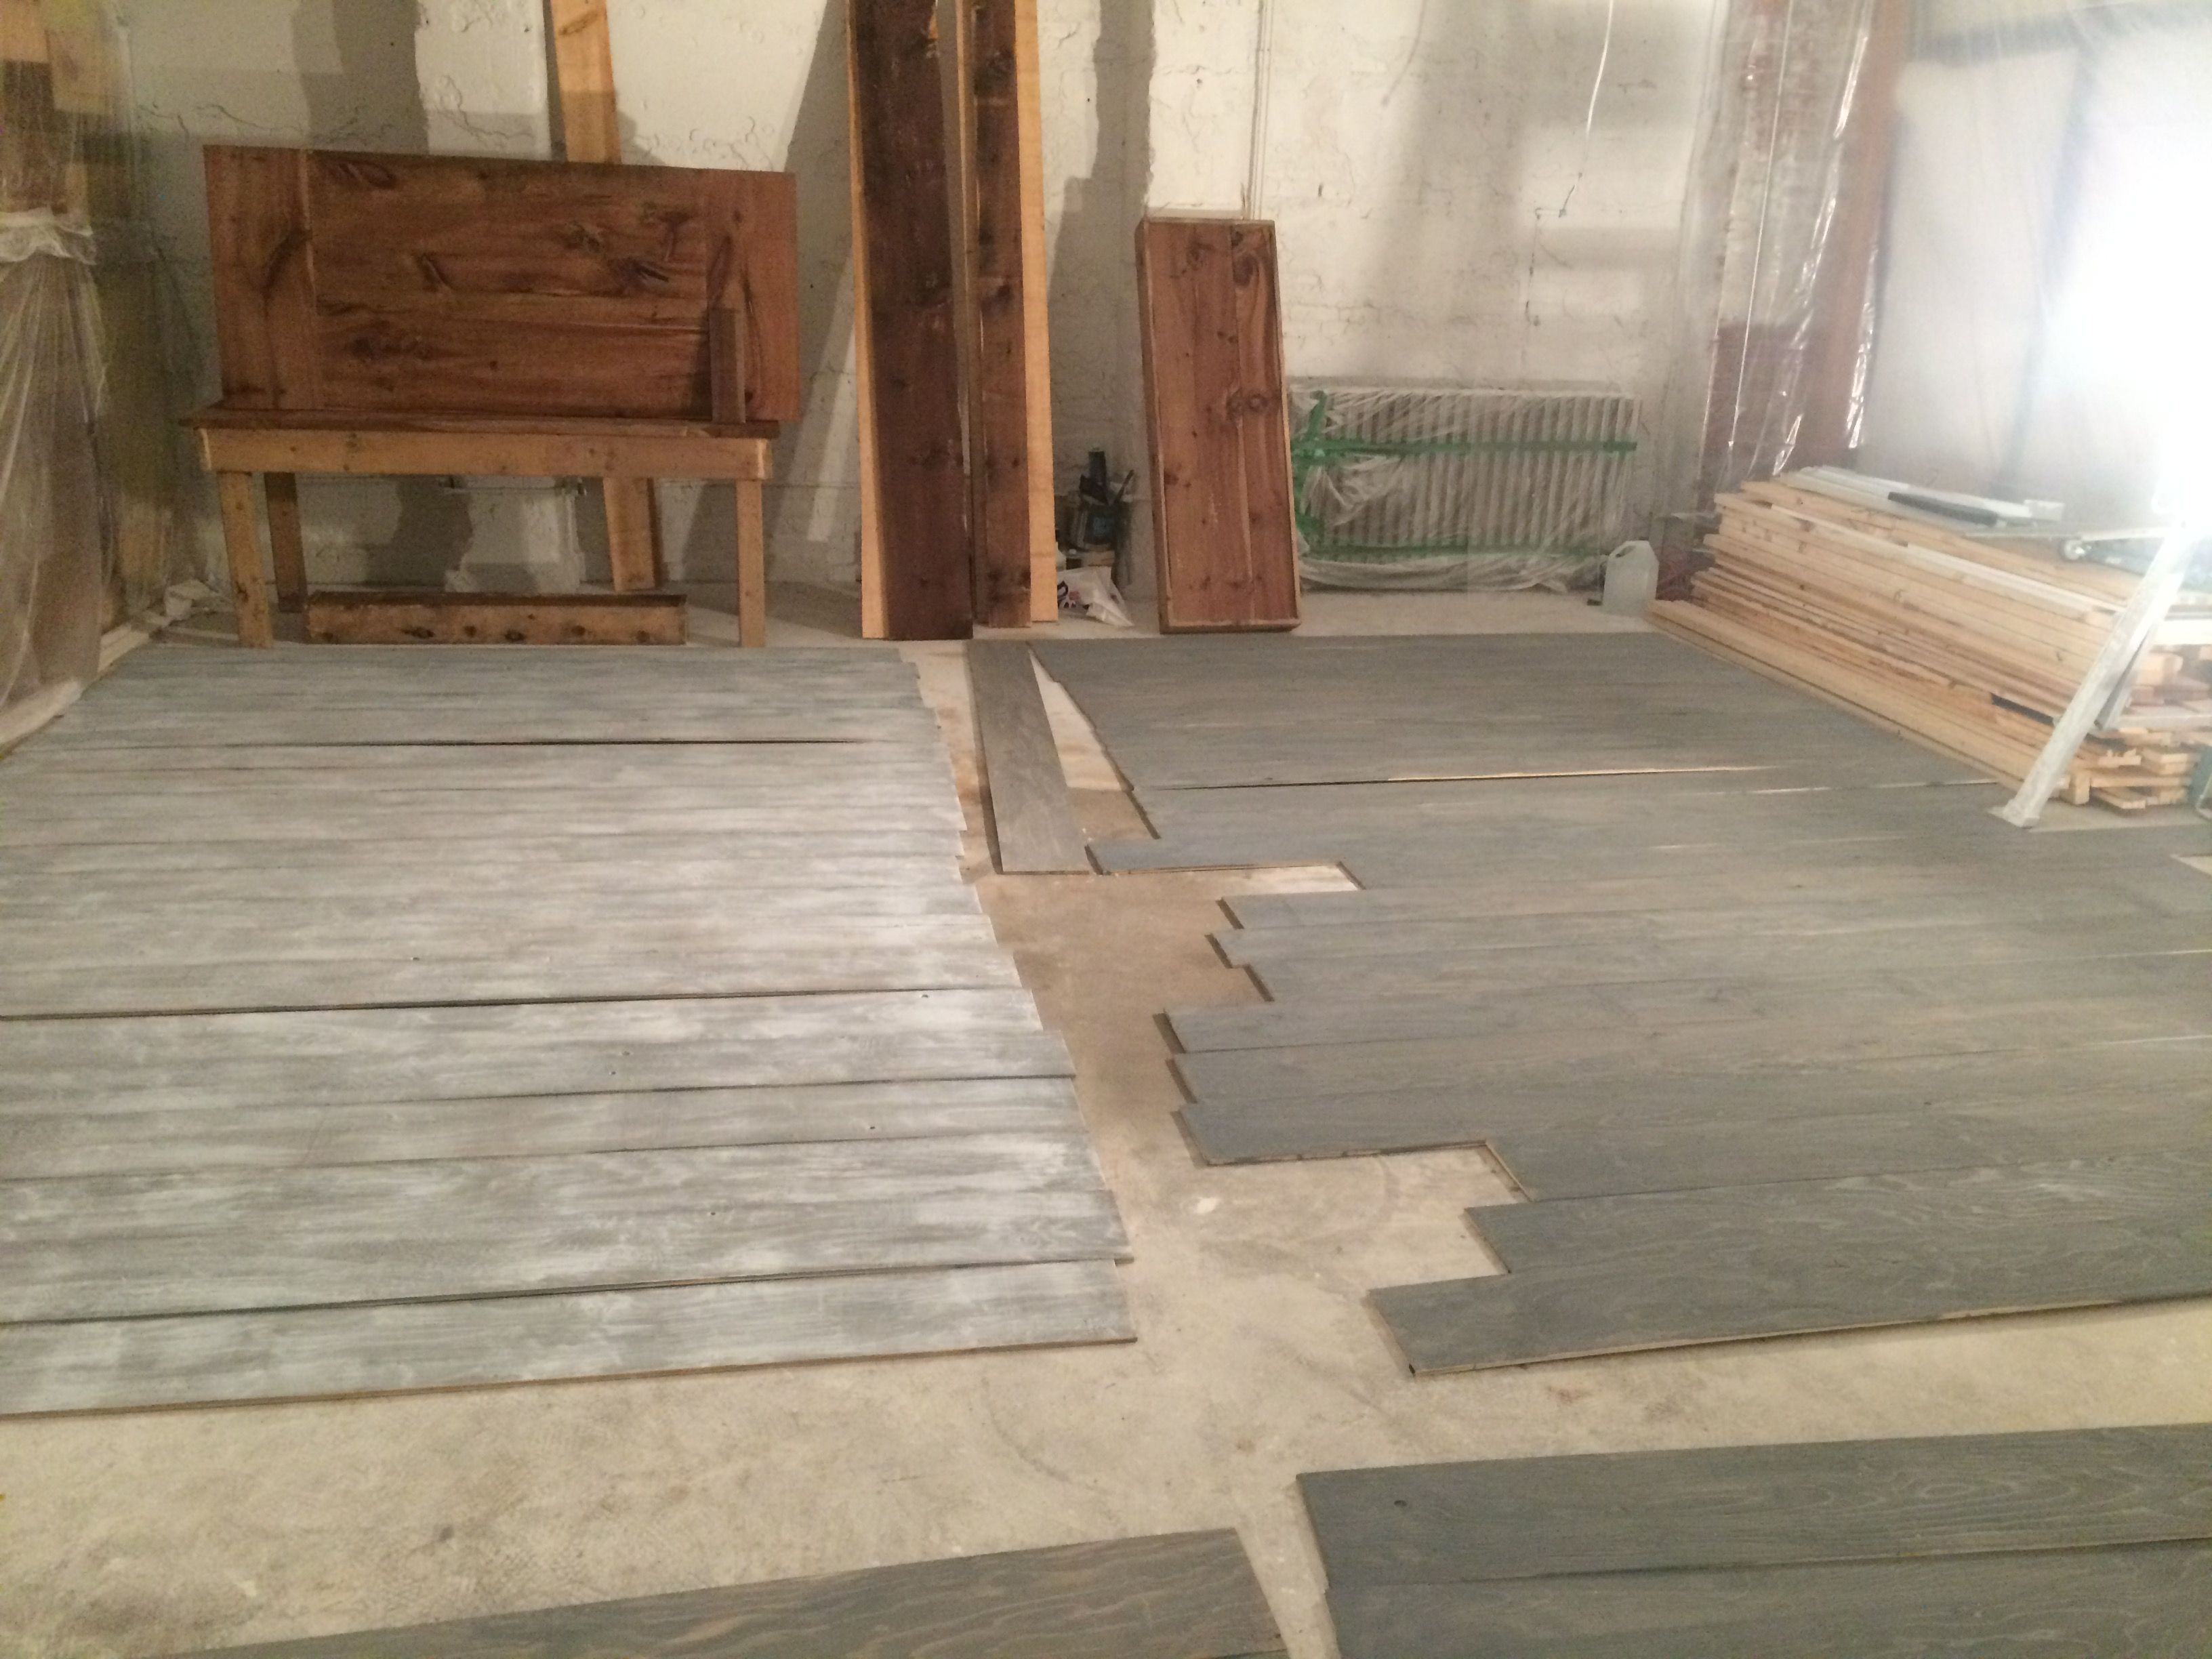 Here is the floor in its second and third stage. We applied a gray wash on the right. Then finish with white paint dry brush on the left.